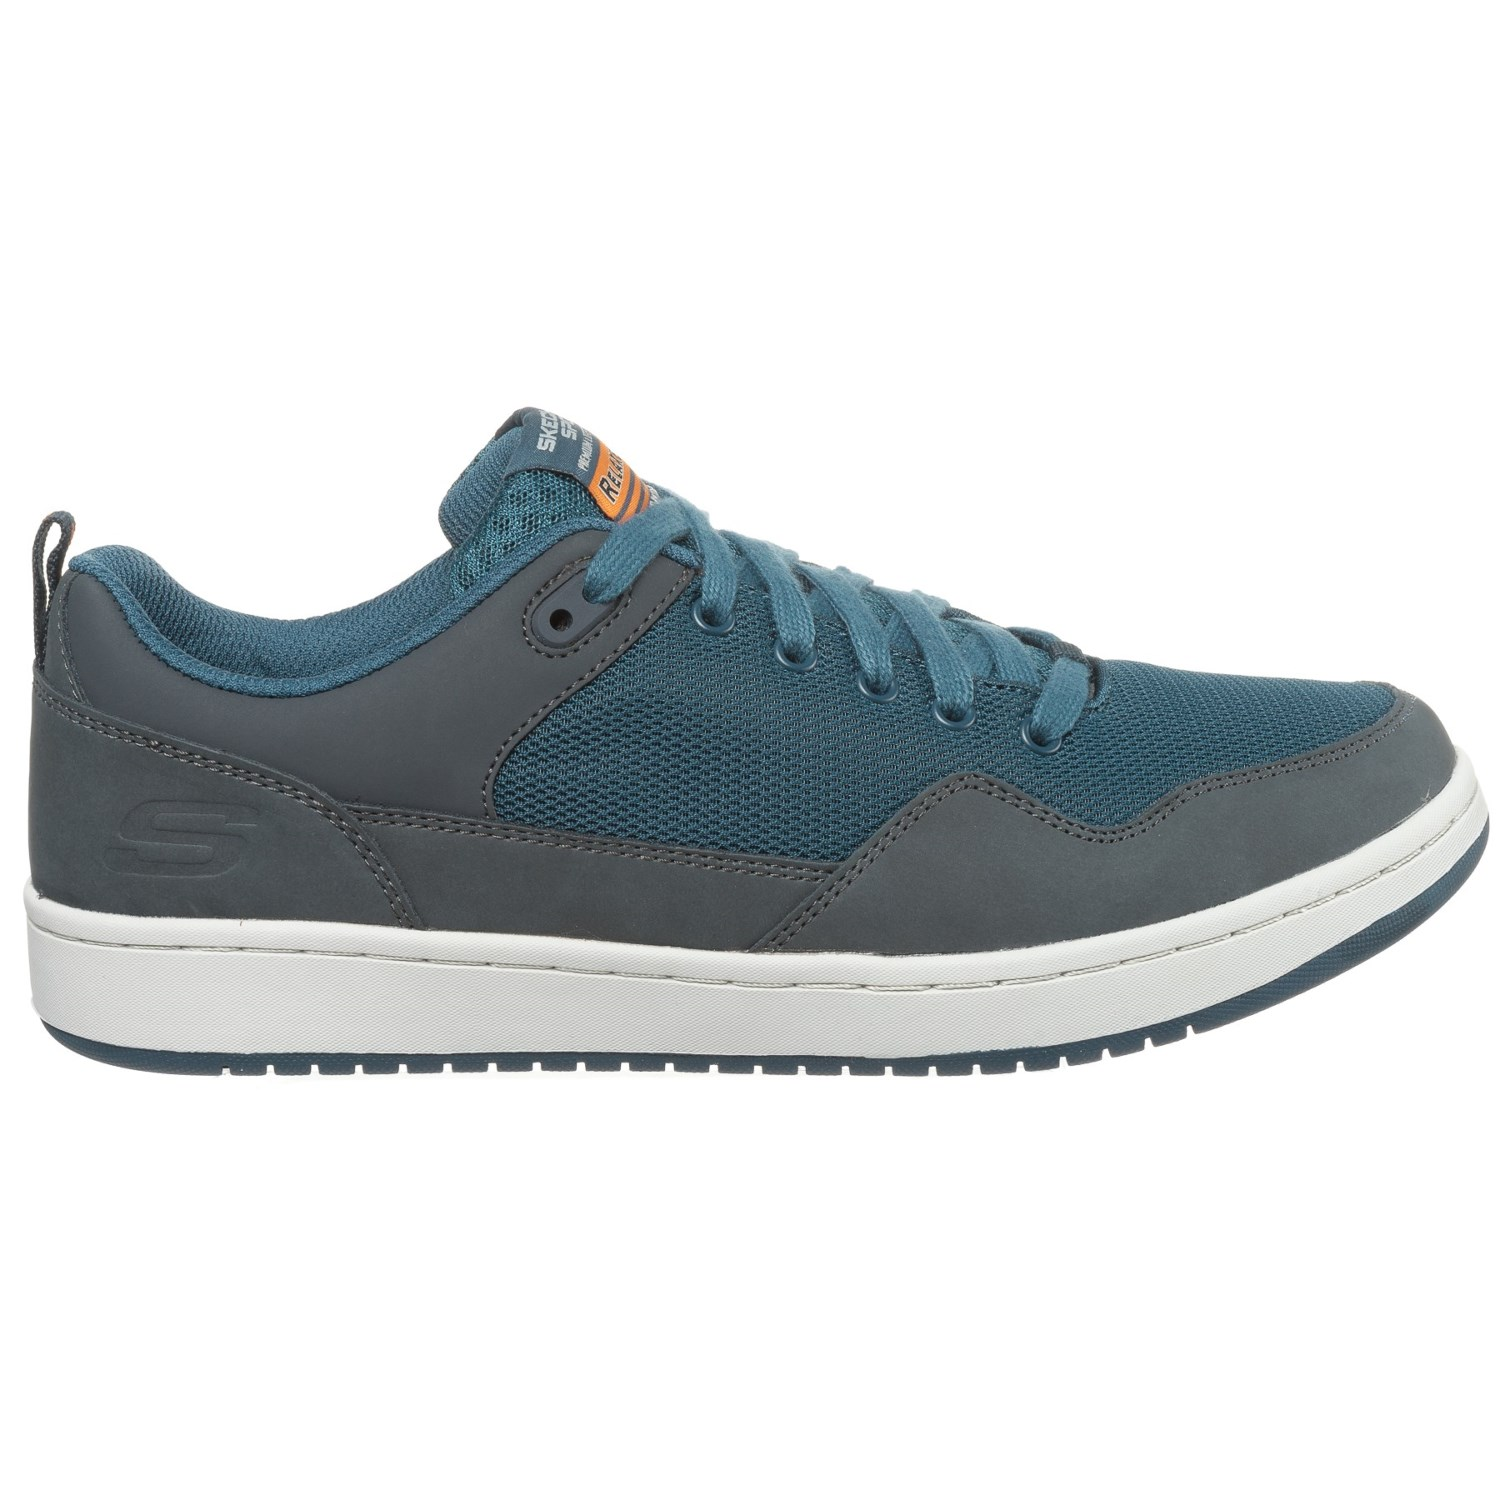 skechers footwear for men